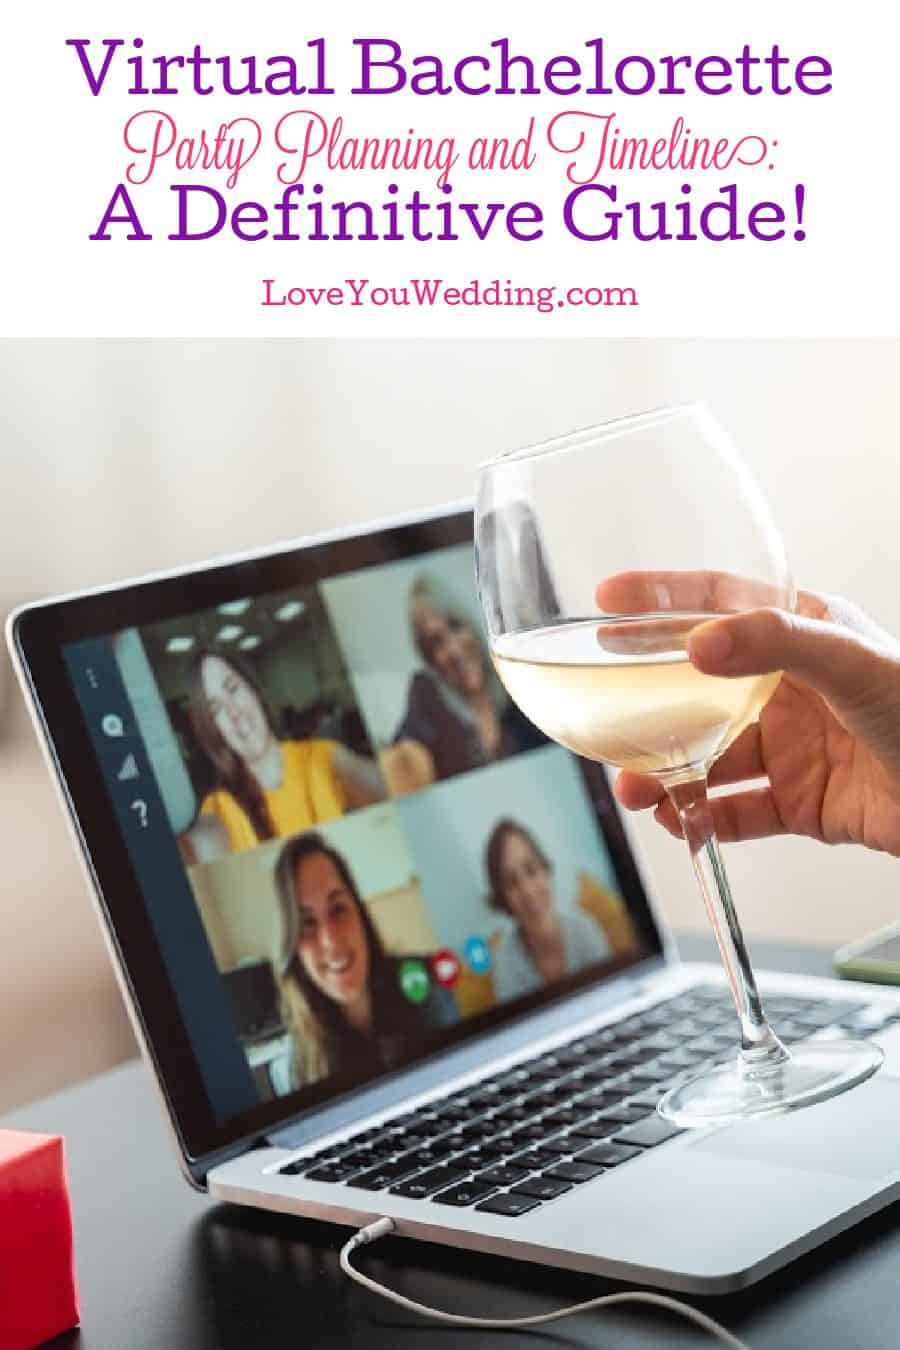 Looking for tips for planning and a timeline for a virtual bachelorette party? We've got you covered! Check out our complete guide!